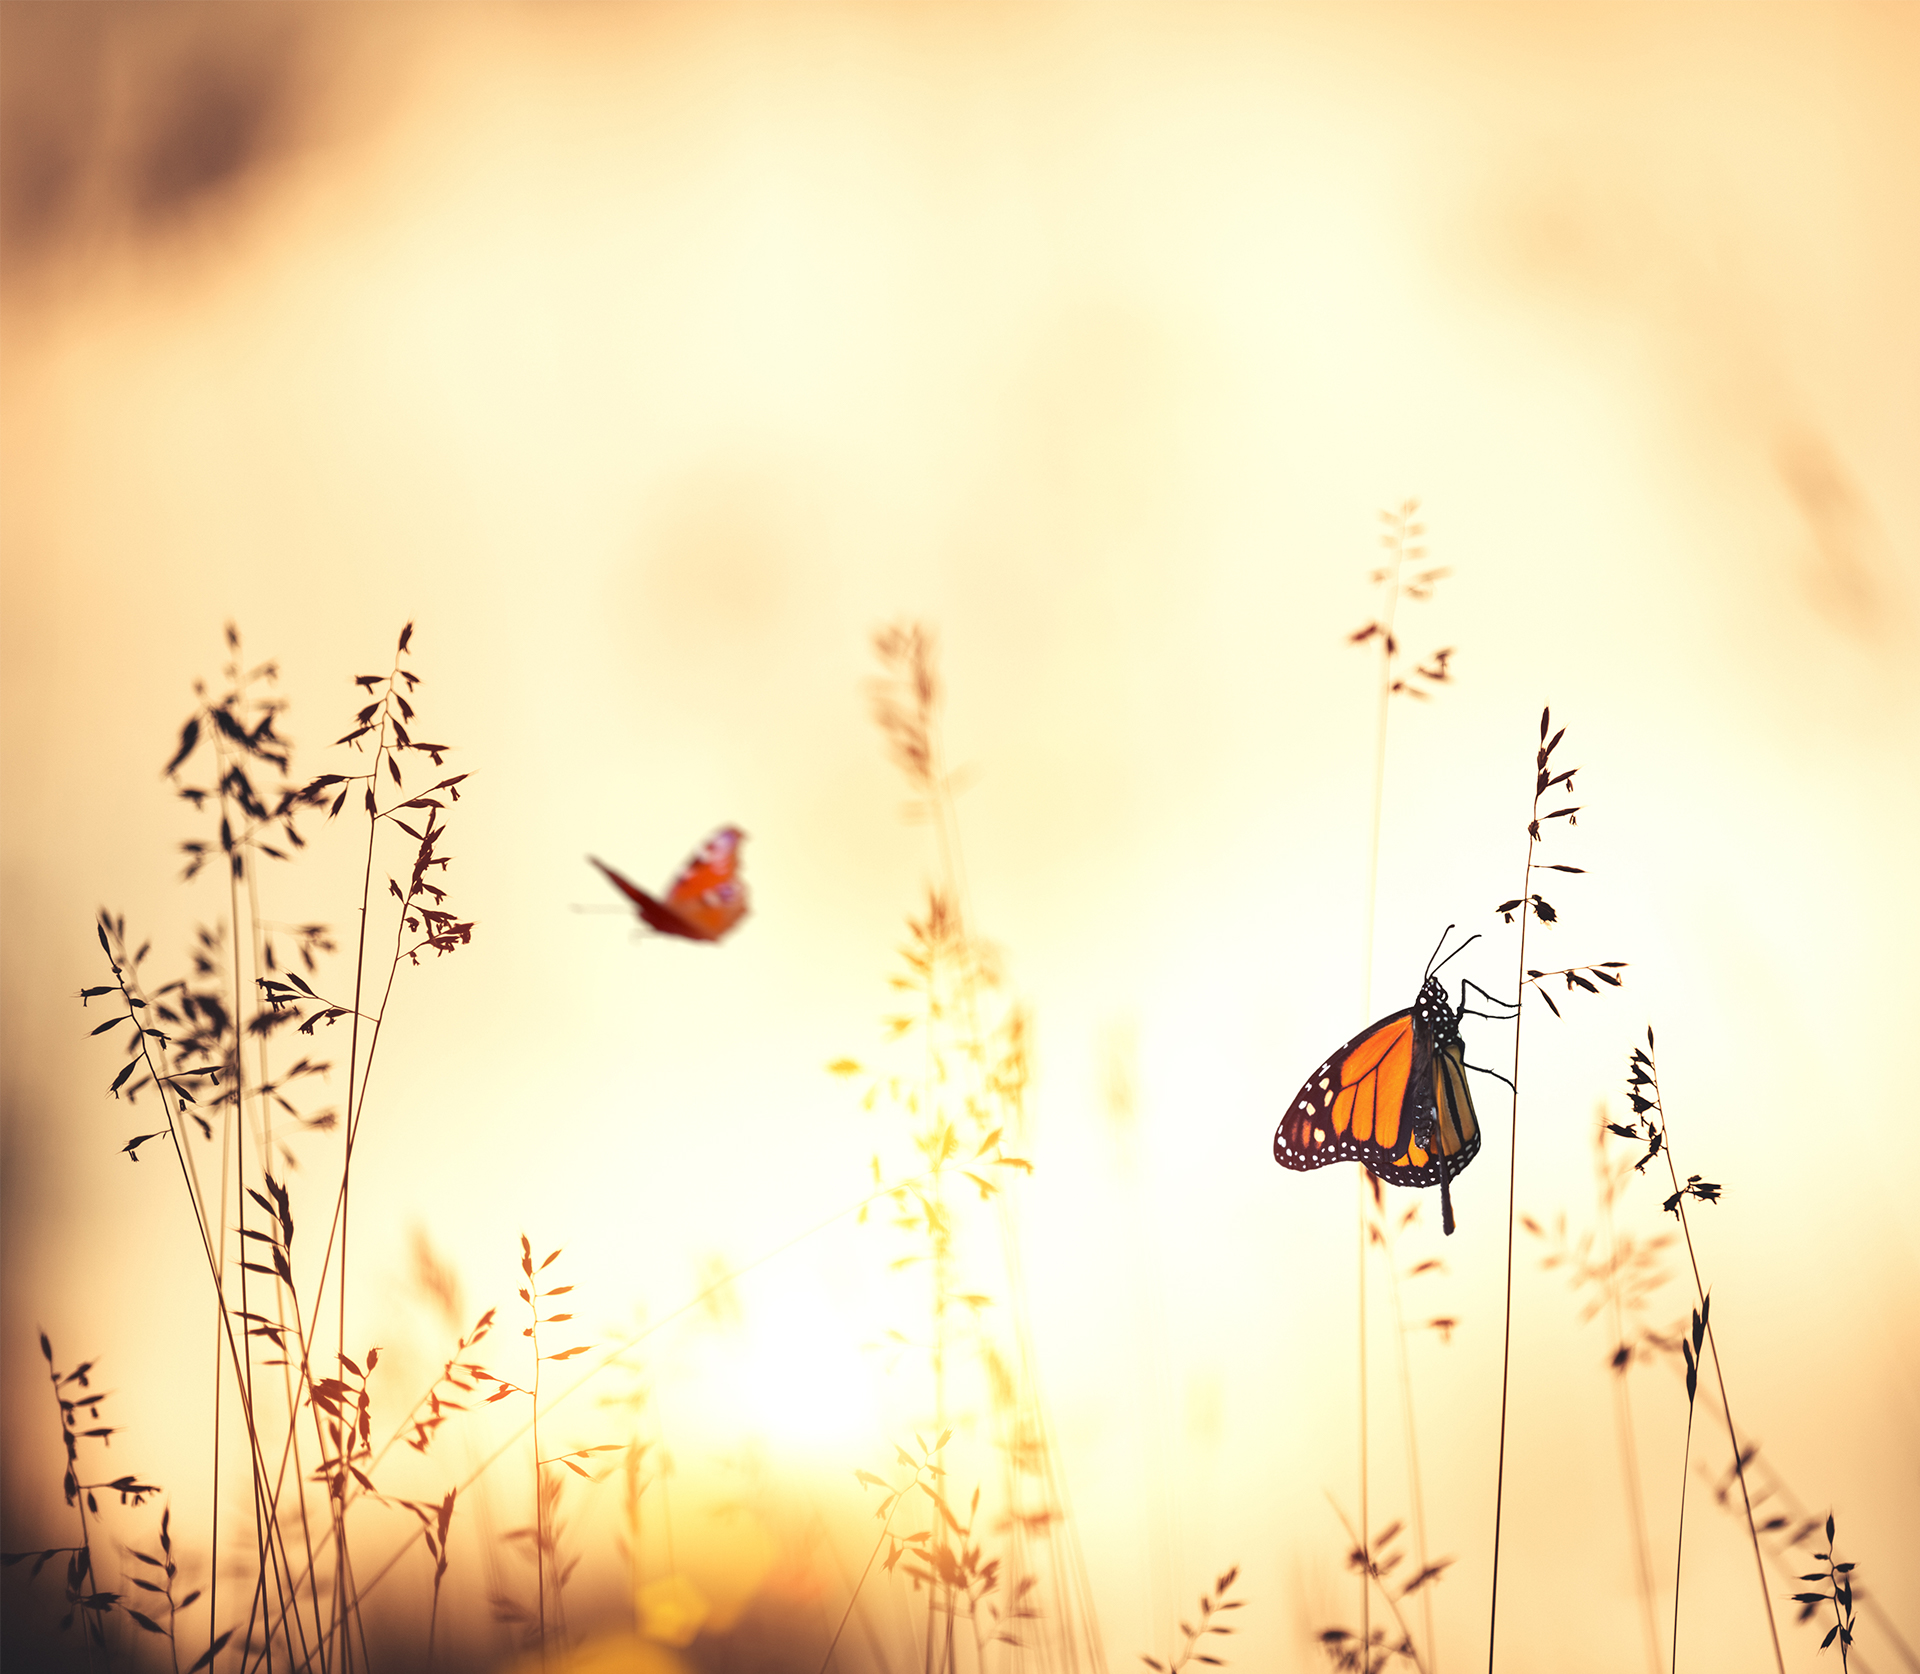 monarch butterfly flying during sunrise